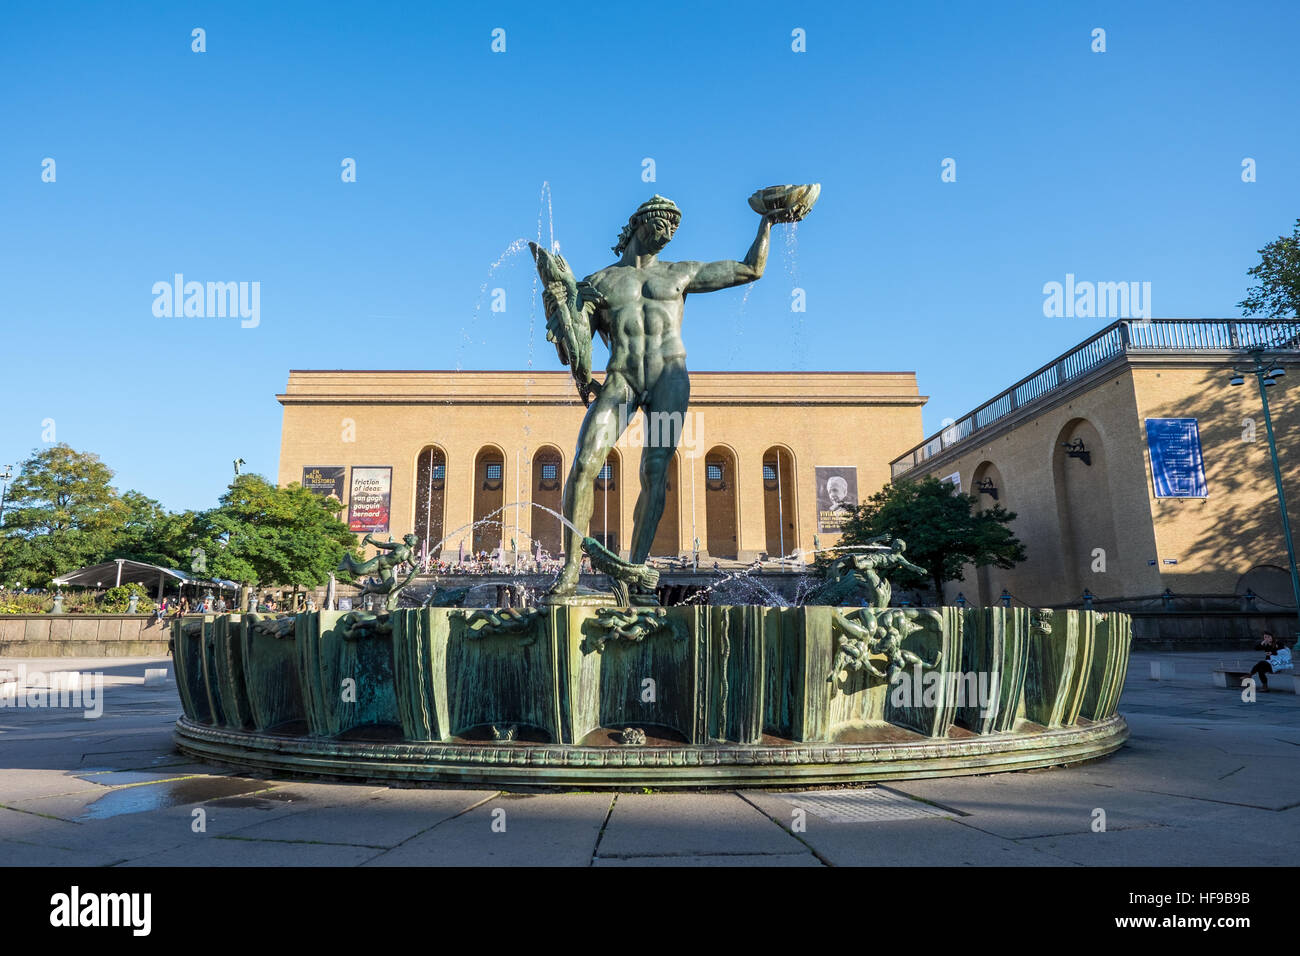 The iconic statue of Poseidon at Gotaplatsen in Gothenburg, Sweden - Stock Image